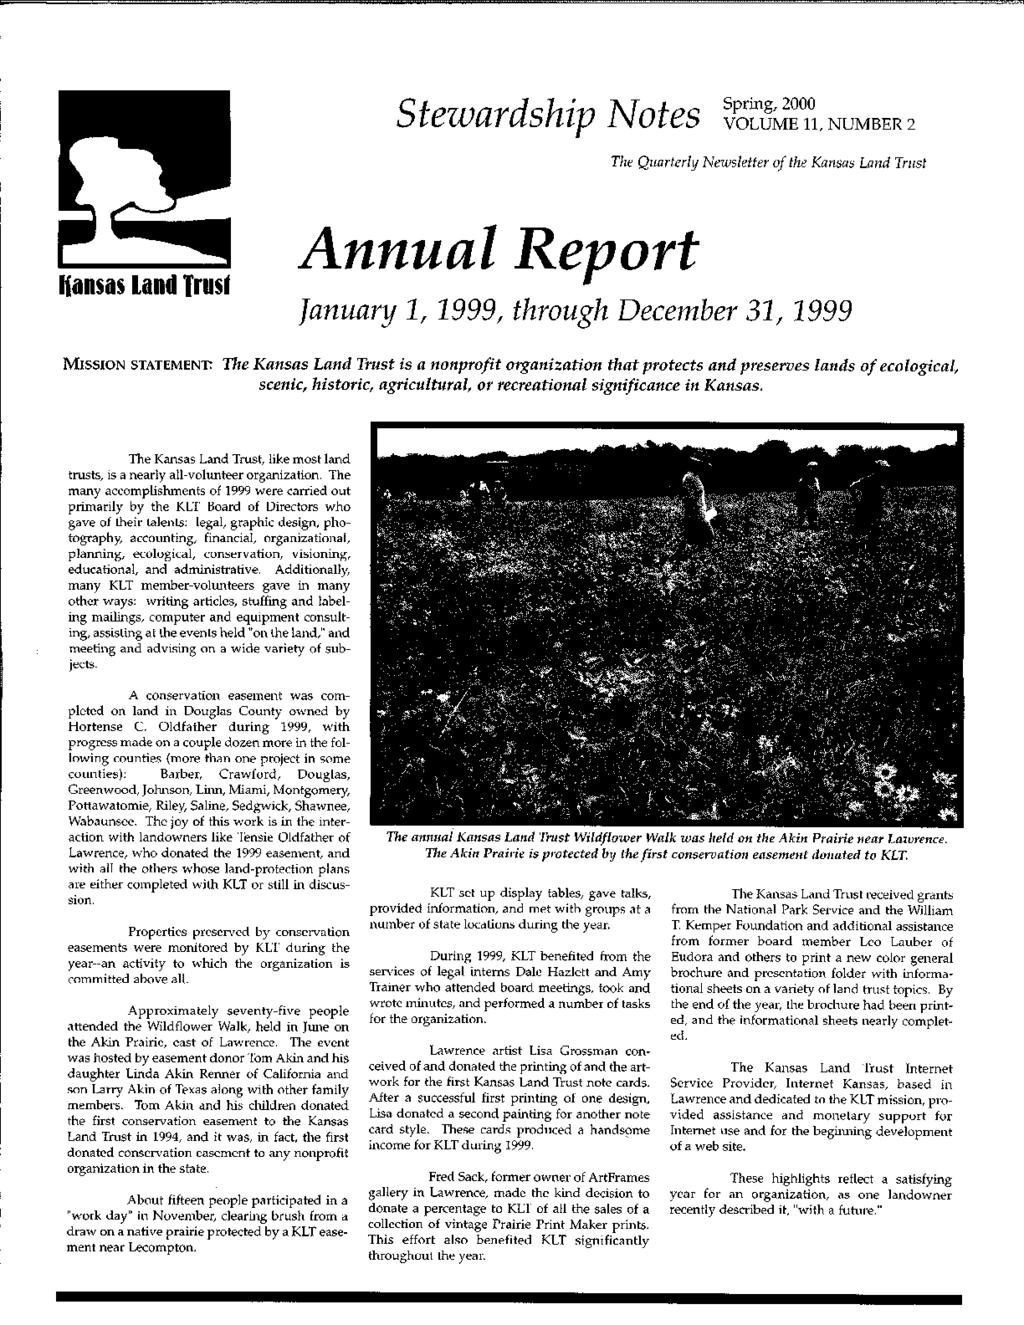 Stezvardship }Votes Spring, 2000 VOLUME 11, NUMBER 2 The Quarterly Newsletter of the Kansas Land Trust Hansas land Trus' Annual Report January 1, 1999, through December 31, 1999 MISSION STATEMENT: